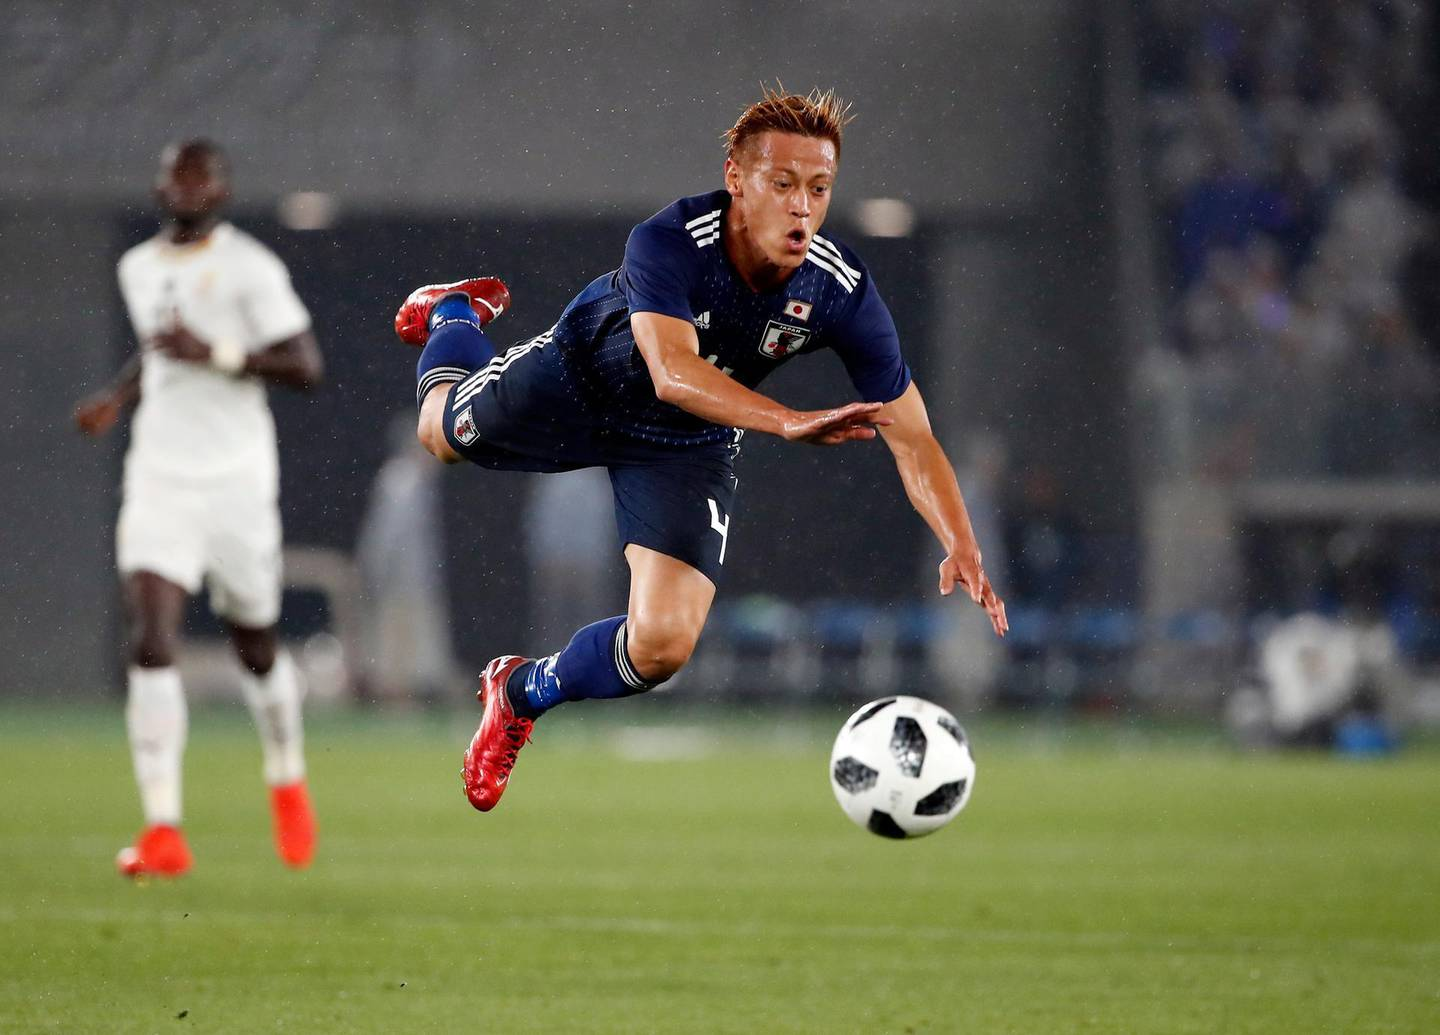 epa06773229 Japan's midfielder Keisuke Honda falls after colliding with Ghana's defender Andrew Kyere-Yiadom (not pictured) during a friendly soccer match between Japan and Ghana in Yokohama, near Tokyo, Japan, 30 May 2018.  EPA/FRANCK ROBICHON